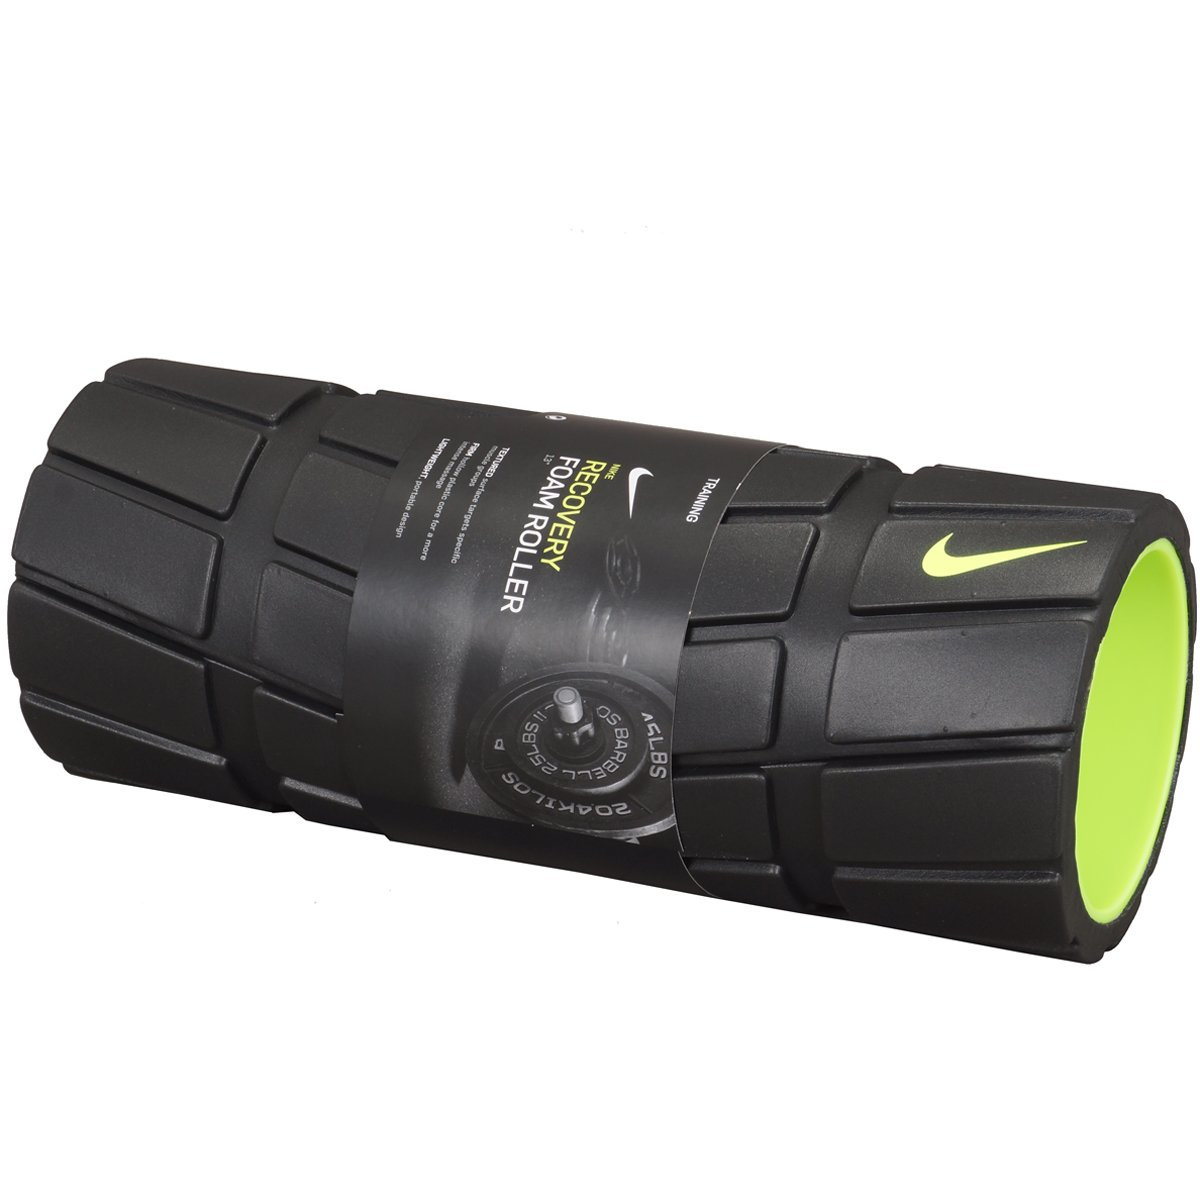 Desviación Superar Baya  Nike Unisex Adult Nike Recovery Foam Roller 13In 13I, Misc Foam Rollers -  Black/Volt, One Size: Buy Online at Best Price in UAE - Amazon.ae